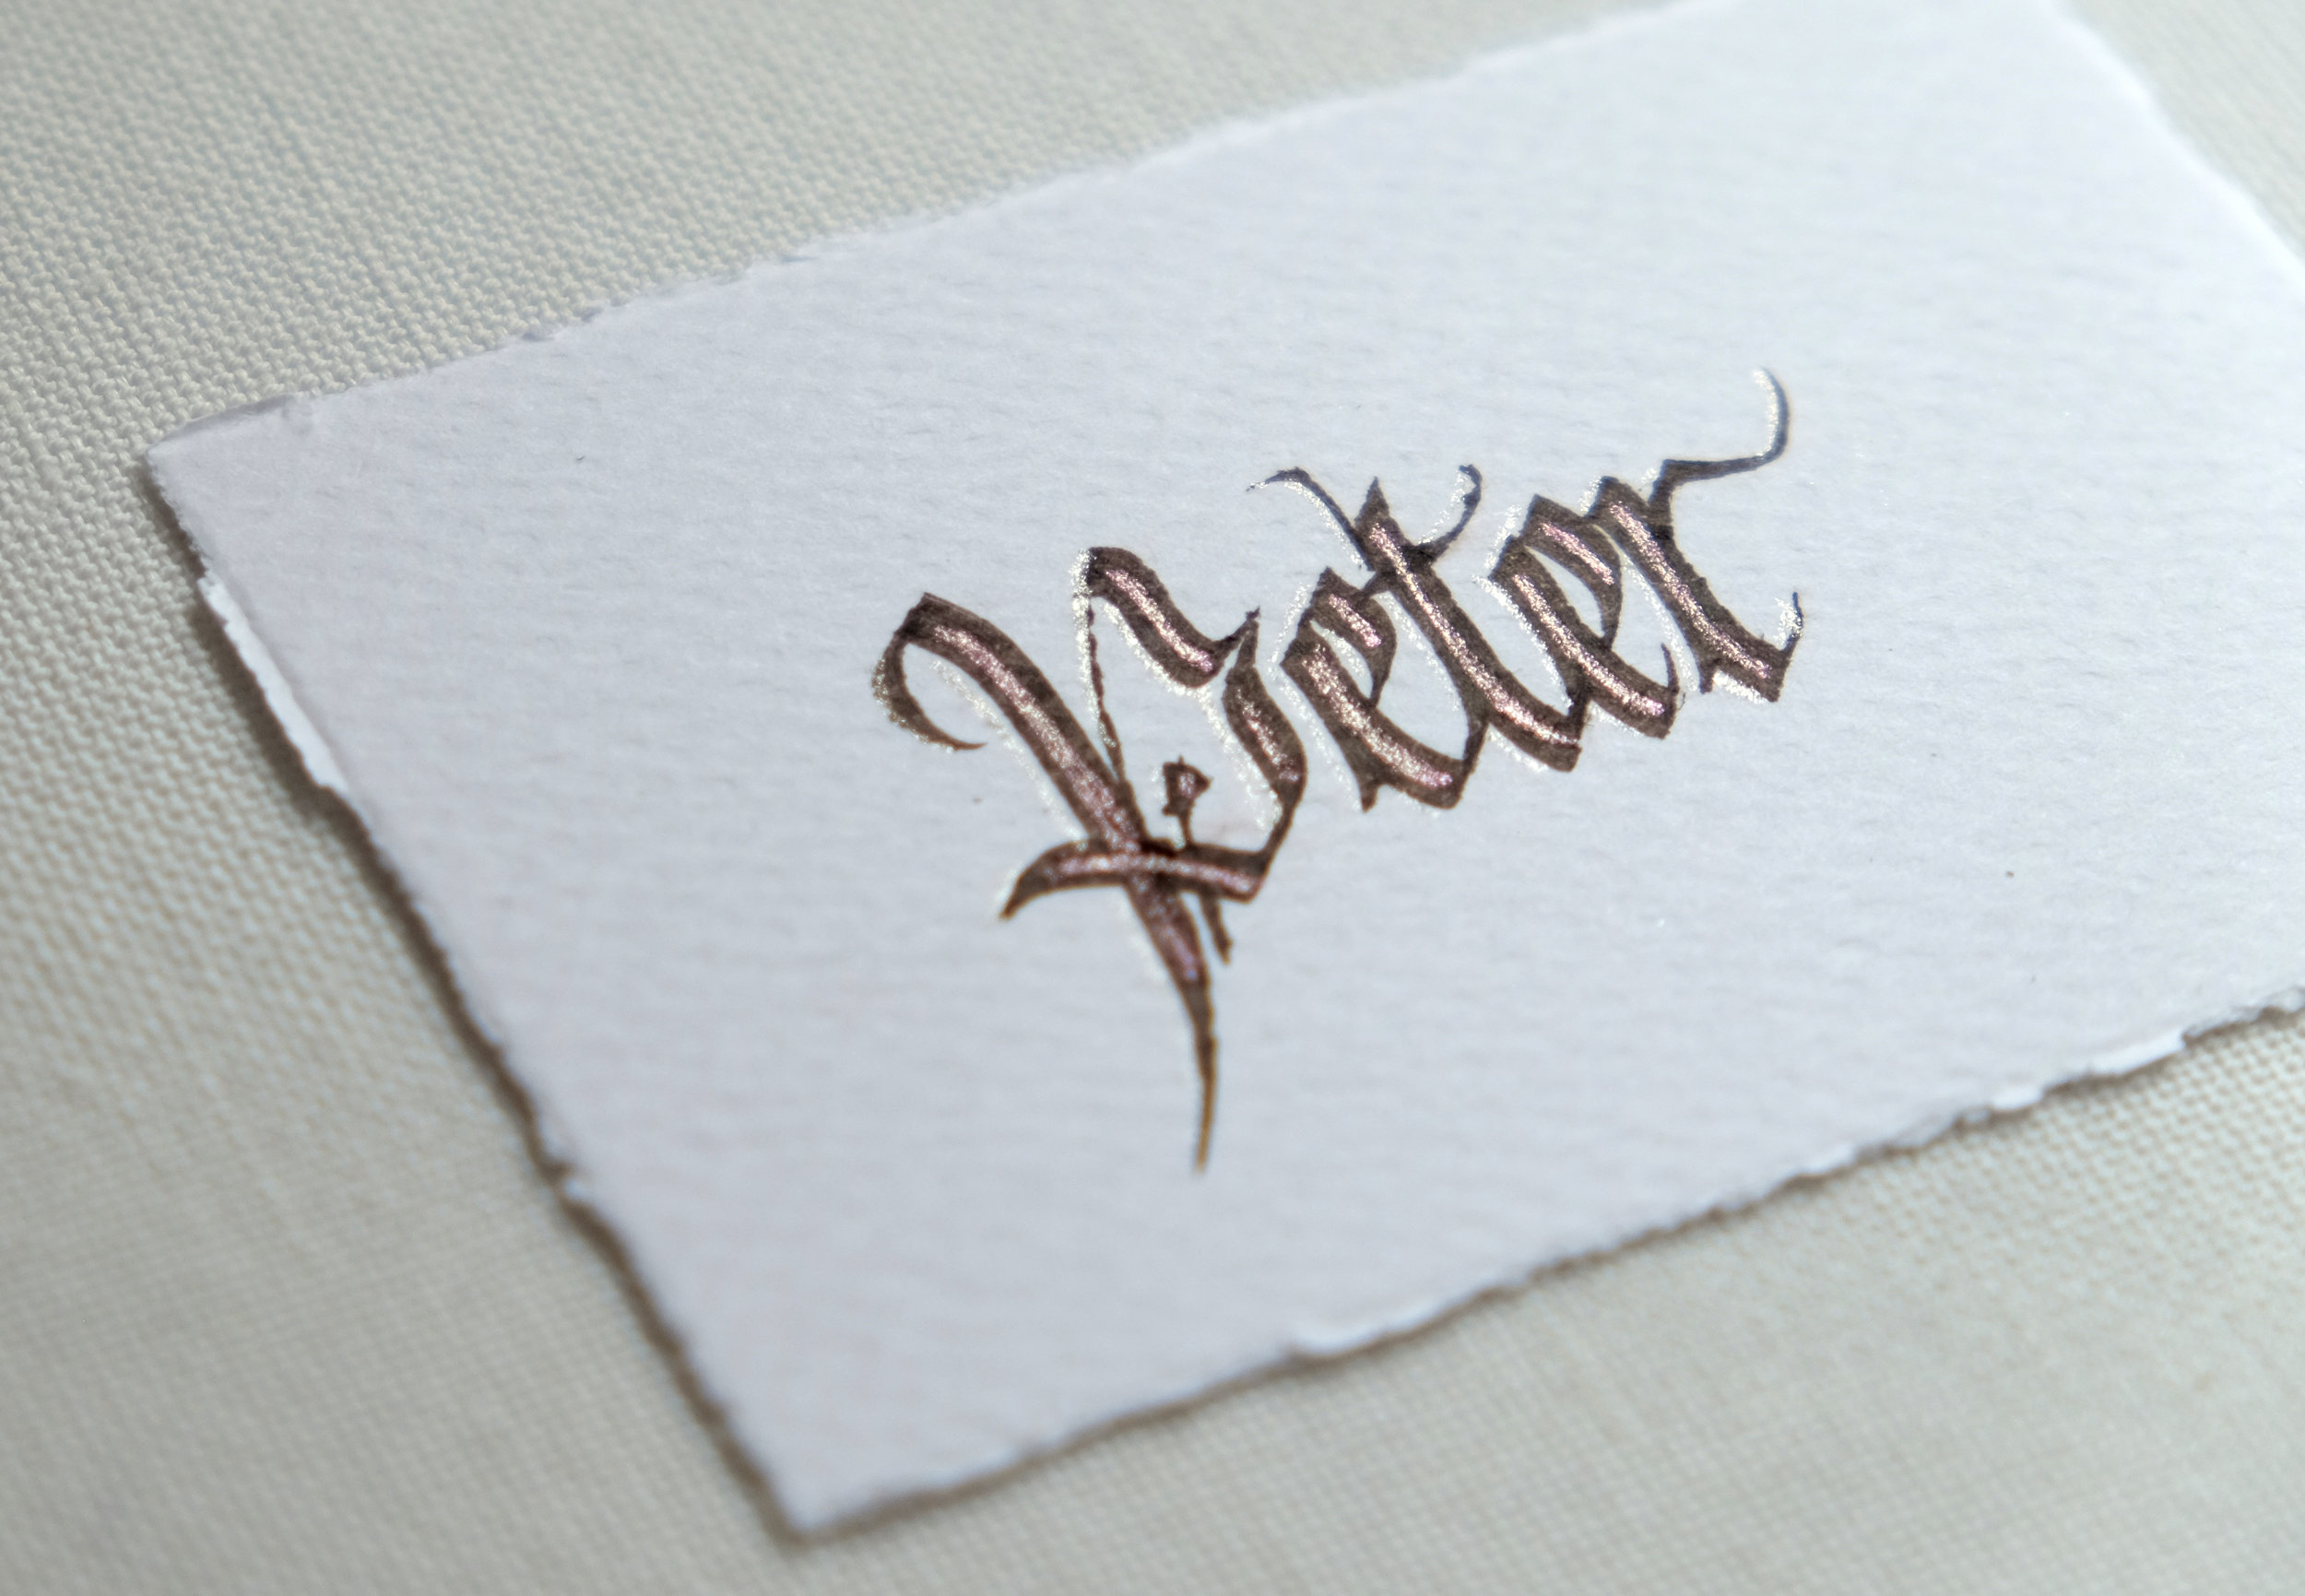 Decorative blackletter calligraphy place card   by www.chavelli.com